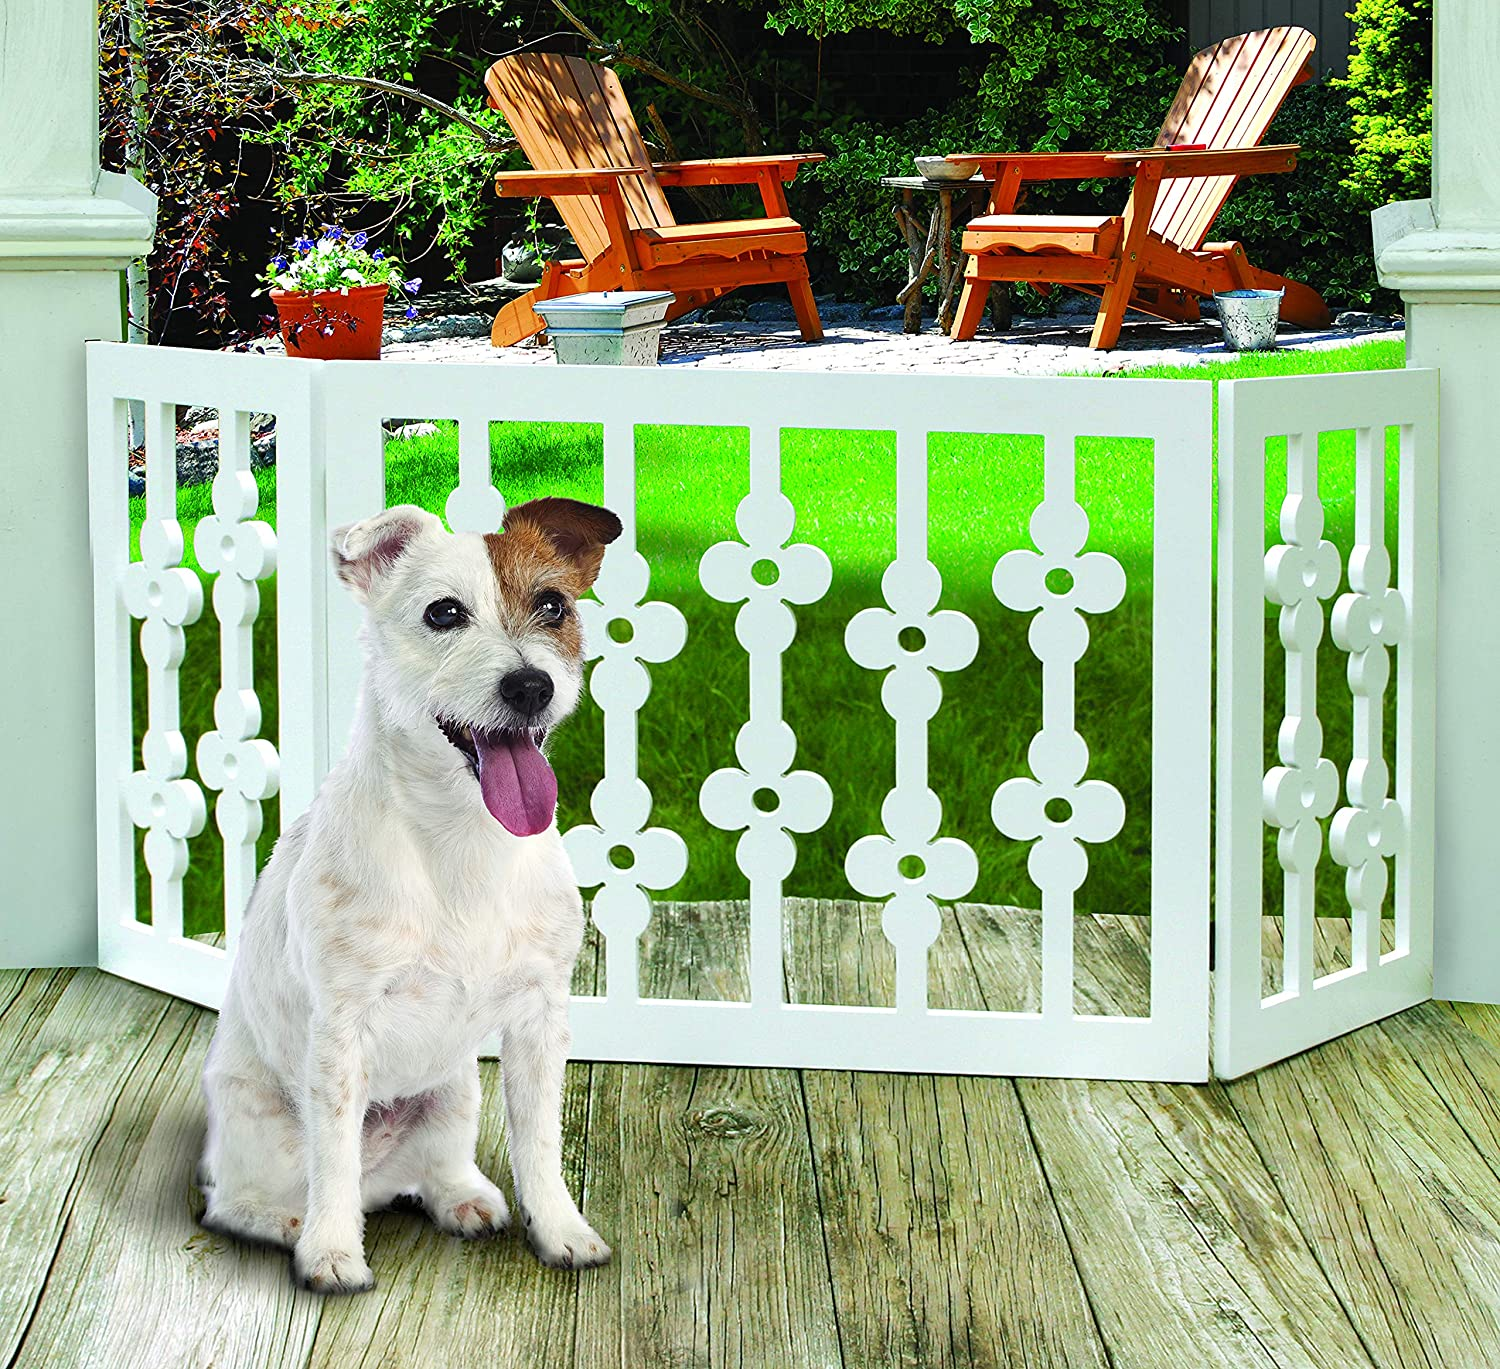 Etna White Floral Wooden Pet Gate – Freestanding Foldable Adjustable 3-Section Dog Gate. Extra Wide, Keeps Pets Safe Indoors Outdoors – Fully Assembled